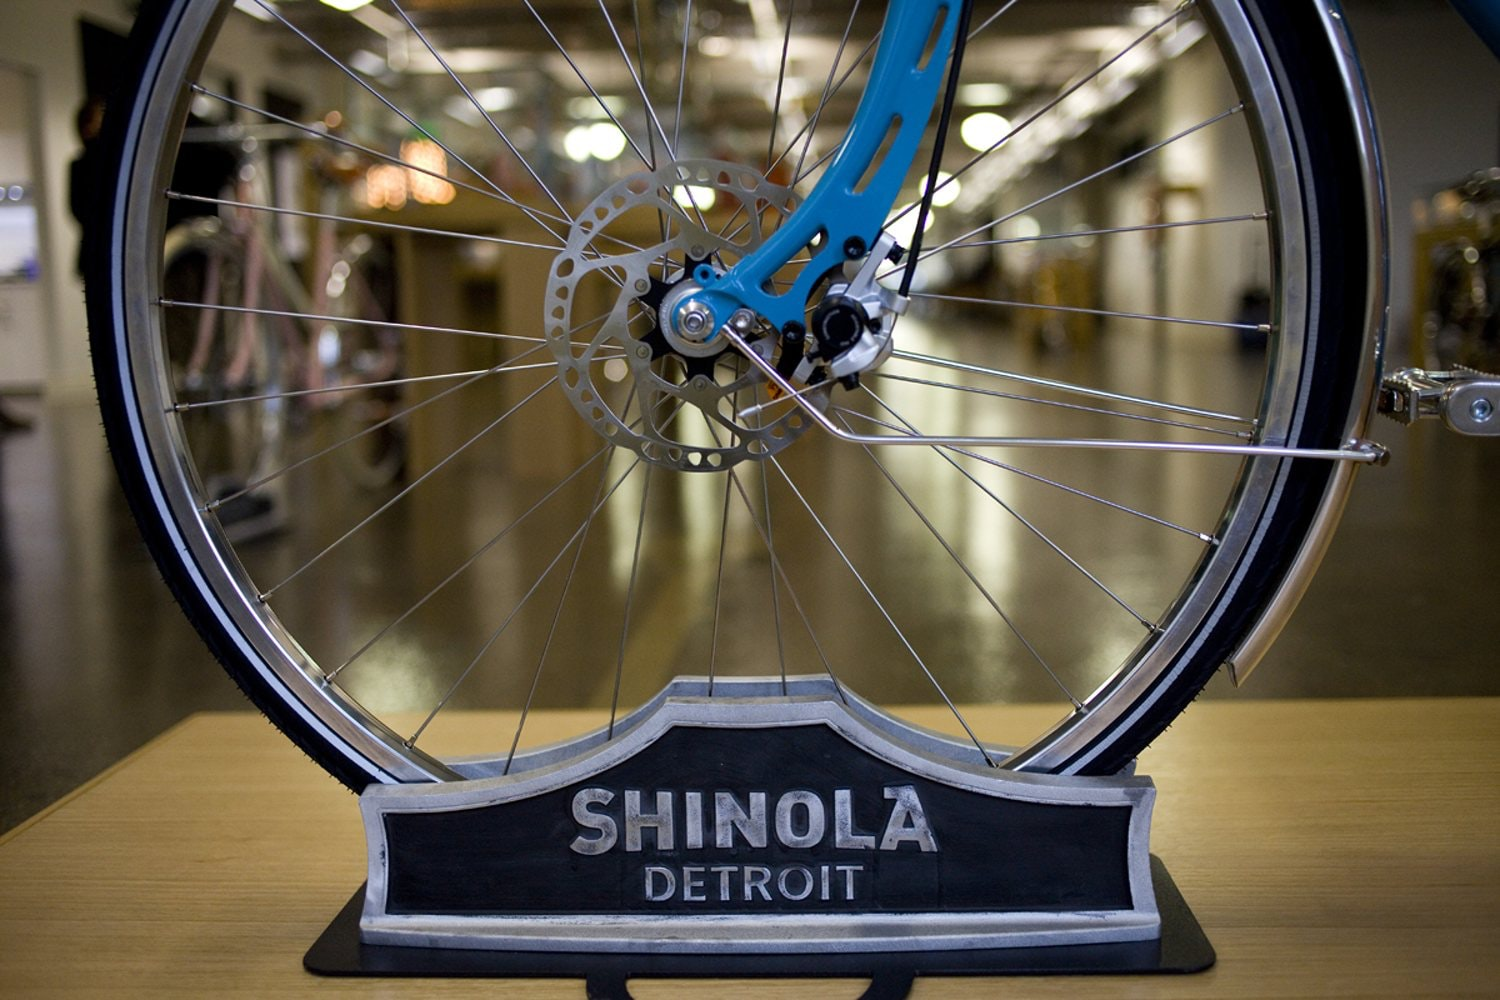 An Open Letter From Shinola Founder Tom Kartsotis In Response To The FTC's Most Recent Action An Open Letter From Shinola Founder Tom Kartsotis In Response To The FTC's Most Recent Action  mg 9986